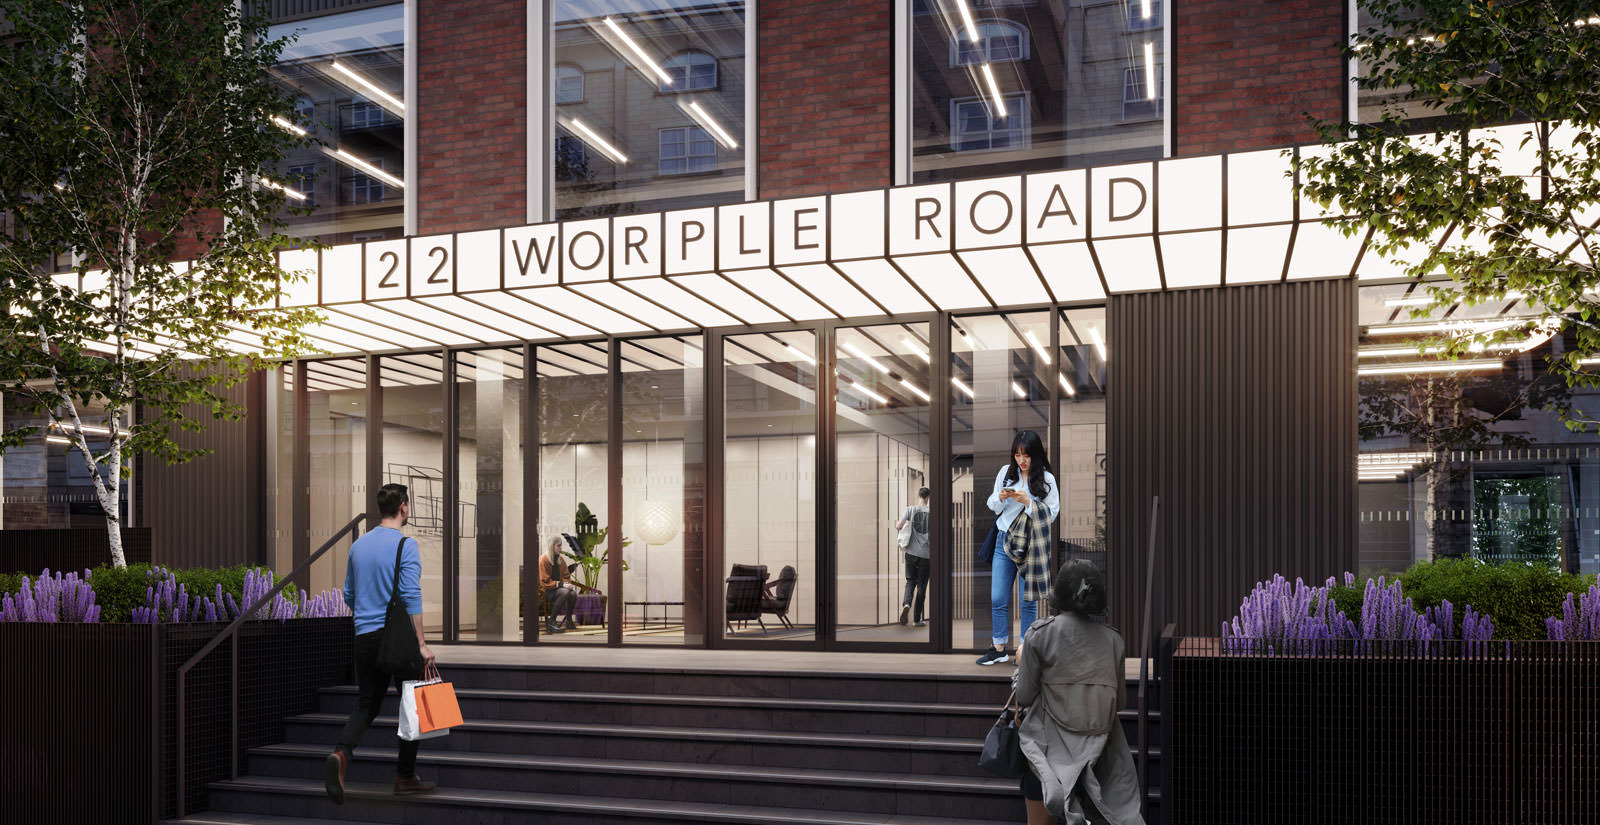 22 Worple Road entrance exterior CGI